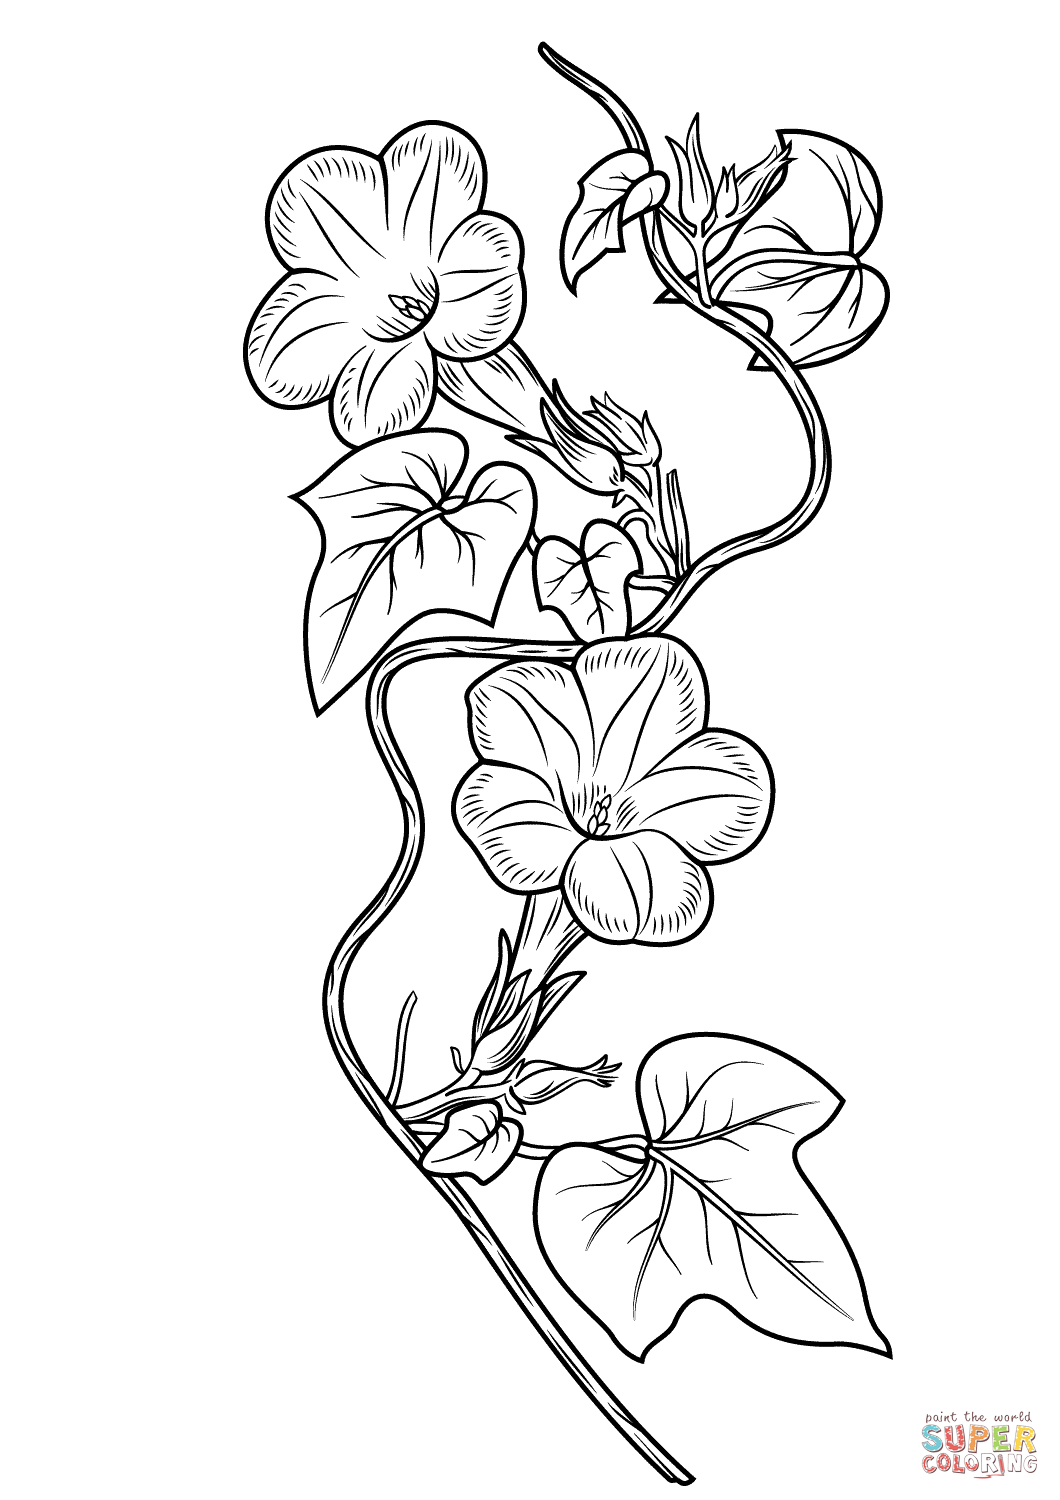 Morning Glory clipart black and white Glory Free Printable Morning Coloring